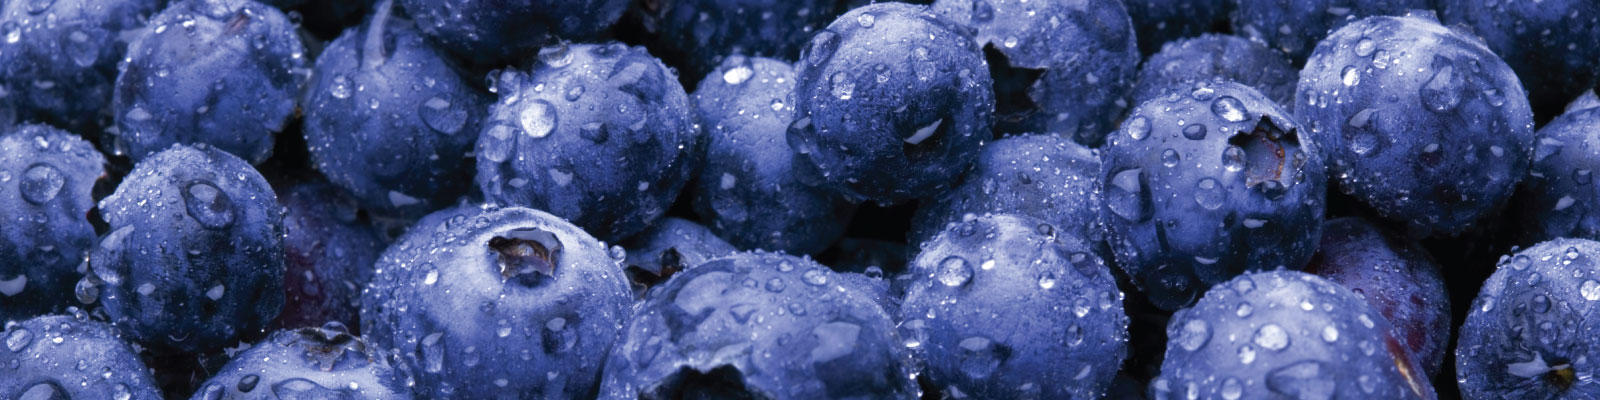 blueberry-farms-banner.jpg